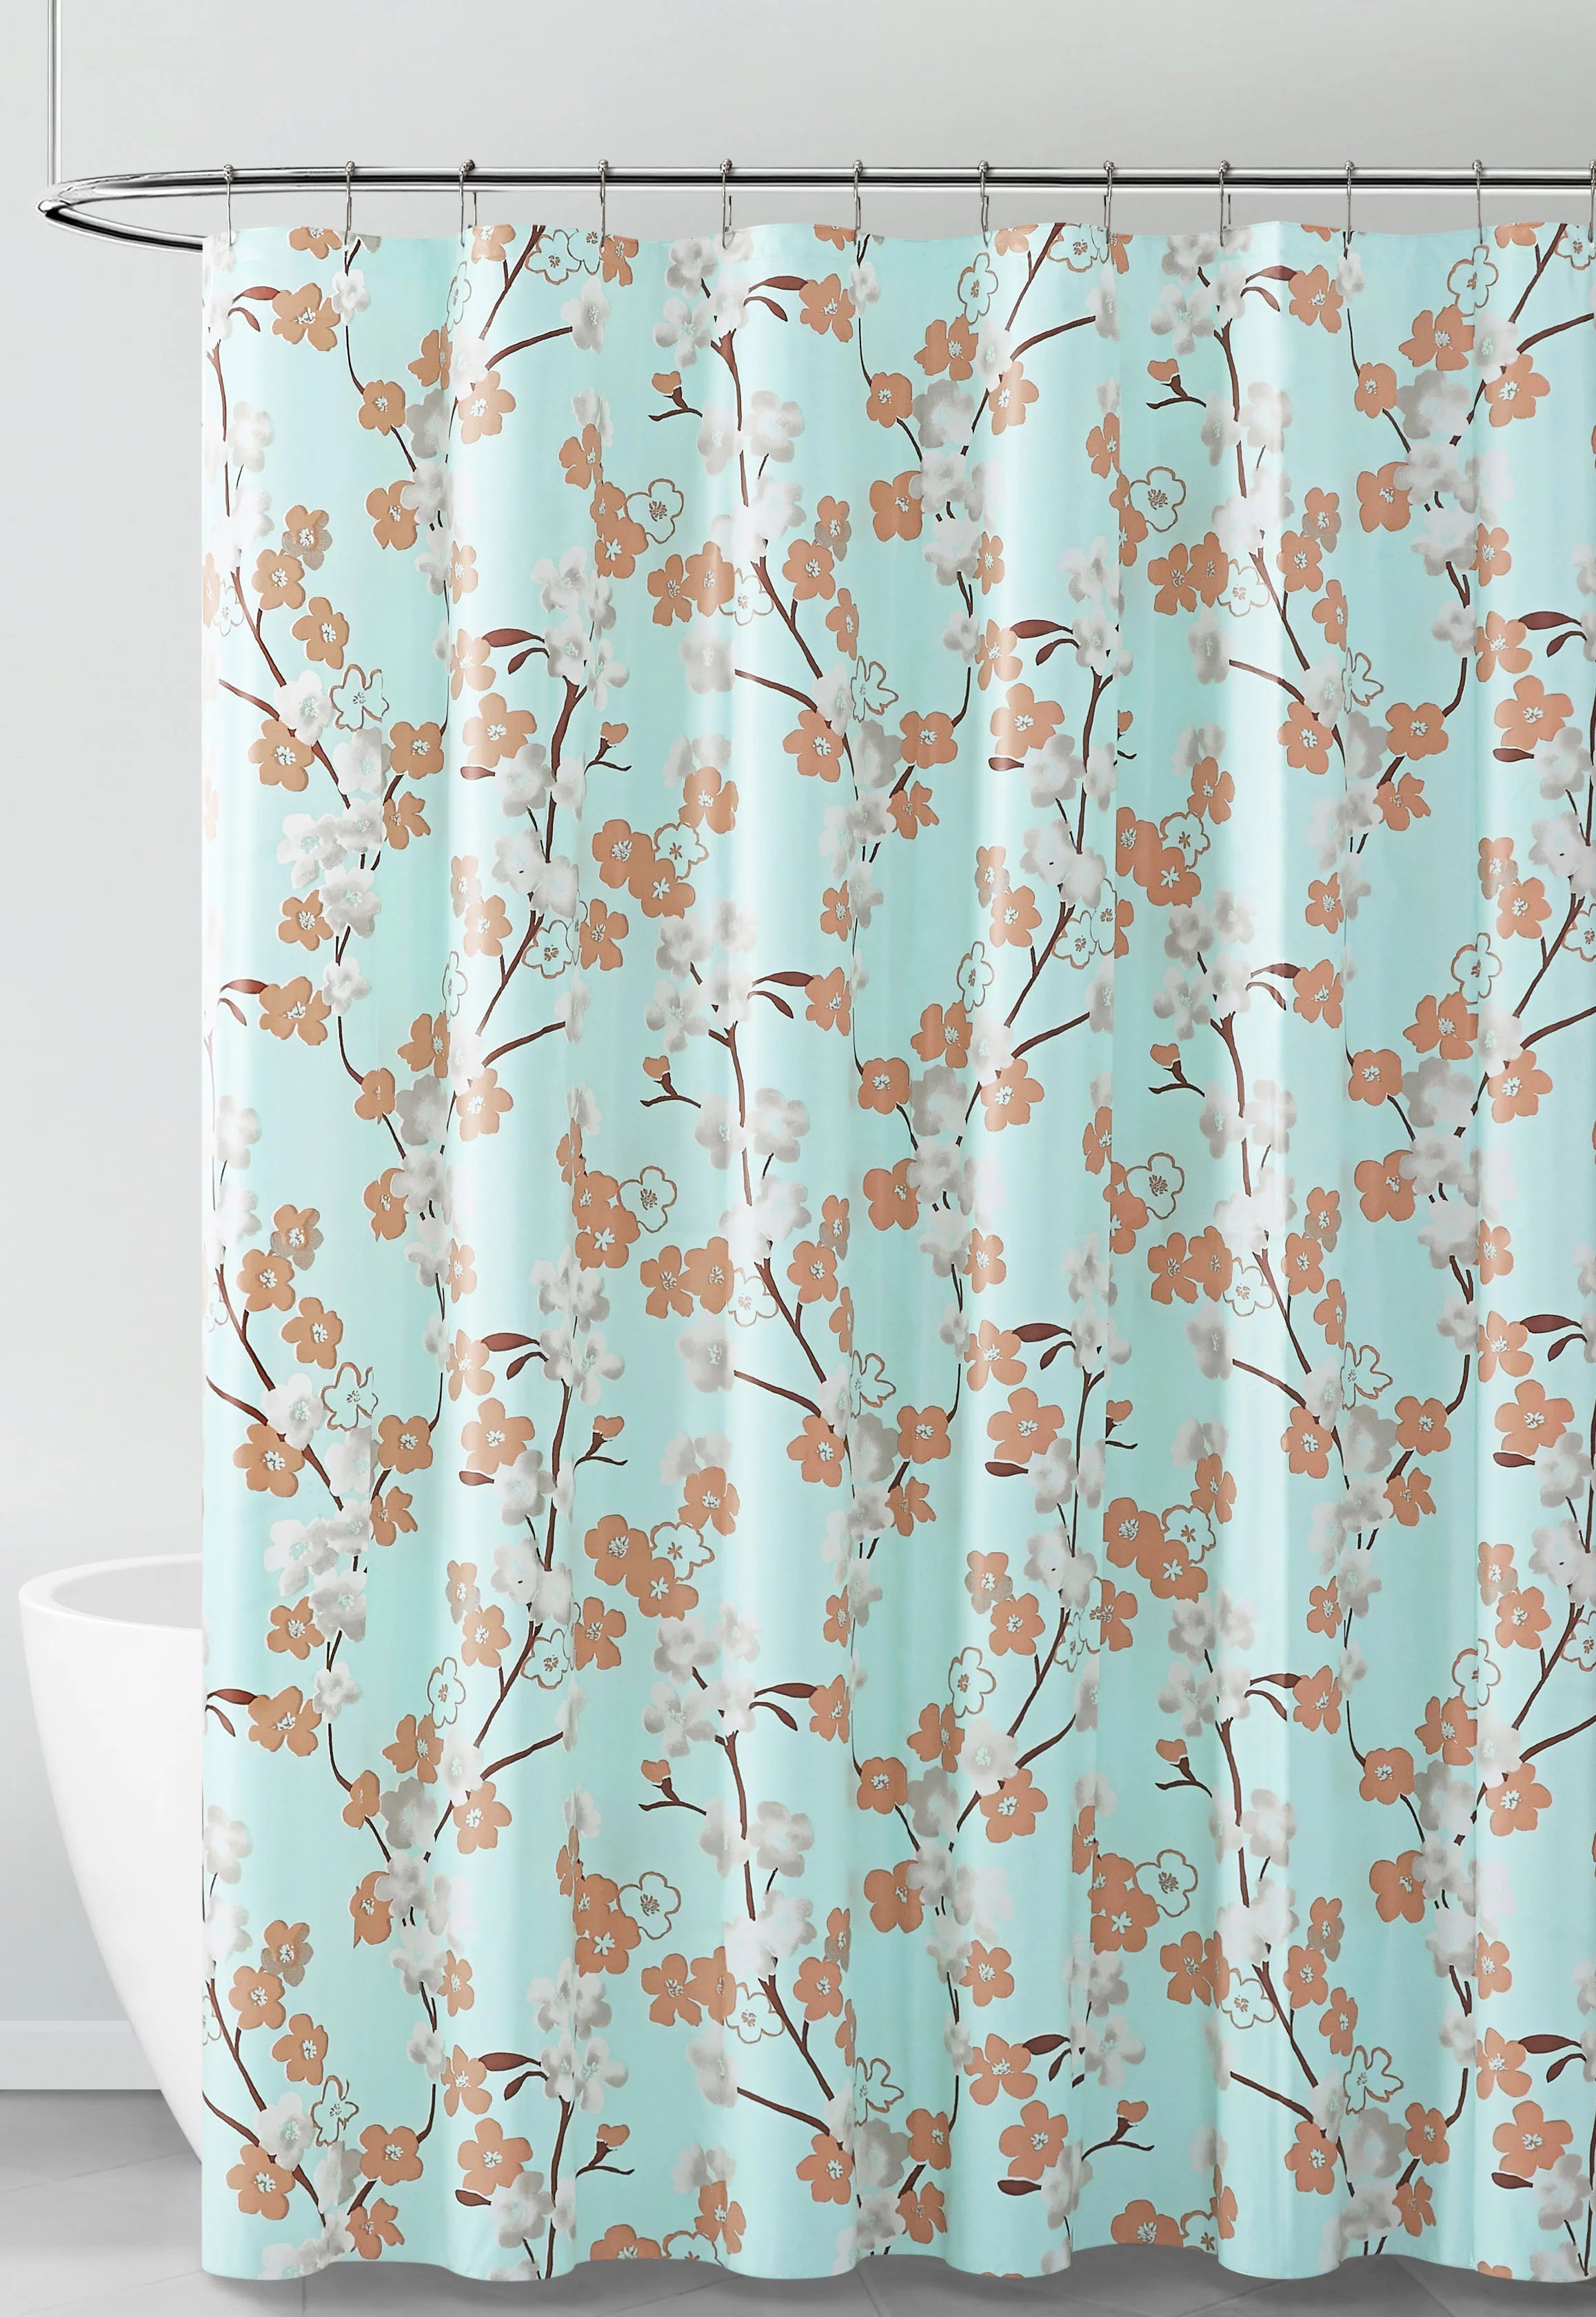 aqua white and brown floral design peva shower curtain liner odorless pvc and chlorine free biodegradable mildew free eco friendly size 72in x